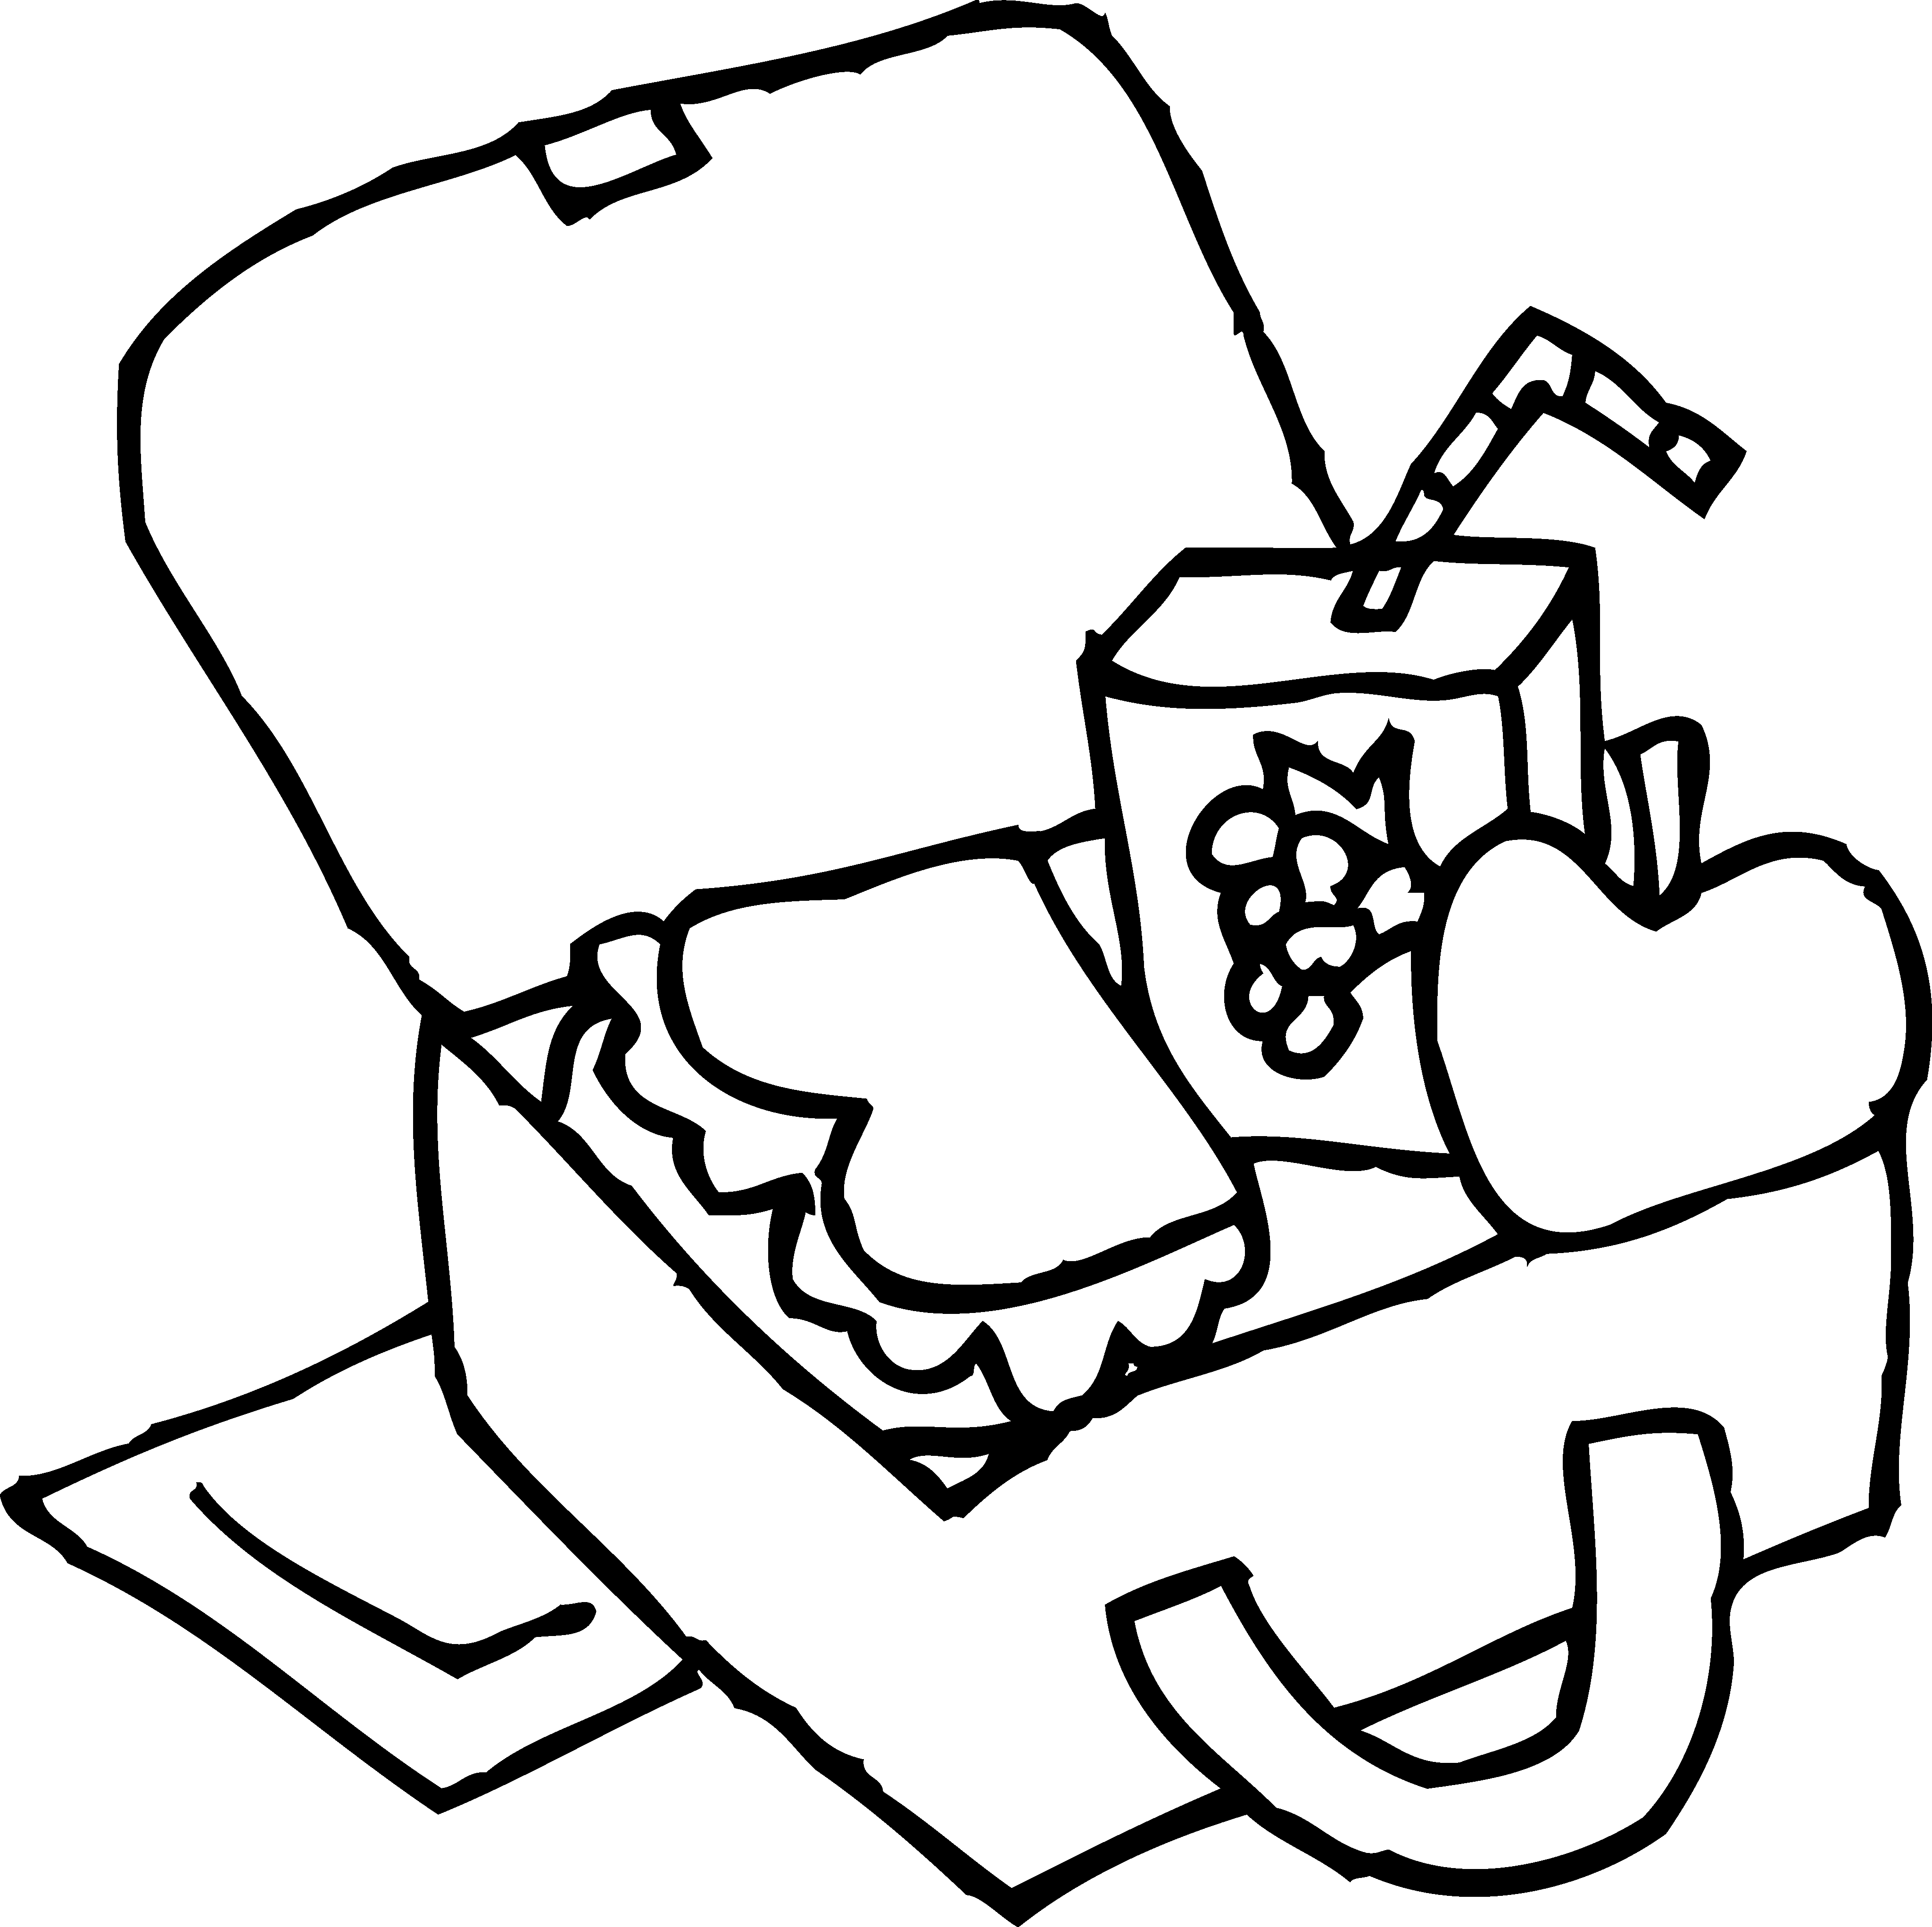 Lunch box coloring page. Lunchbox clipart outline